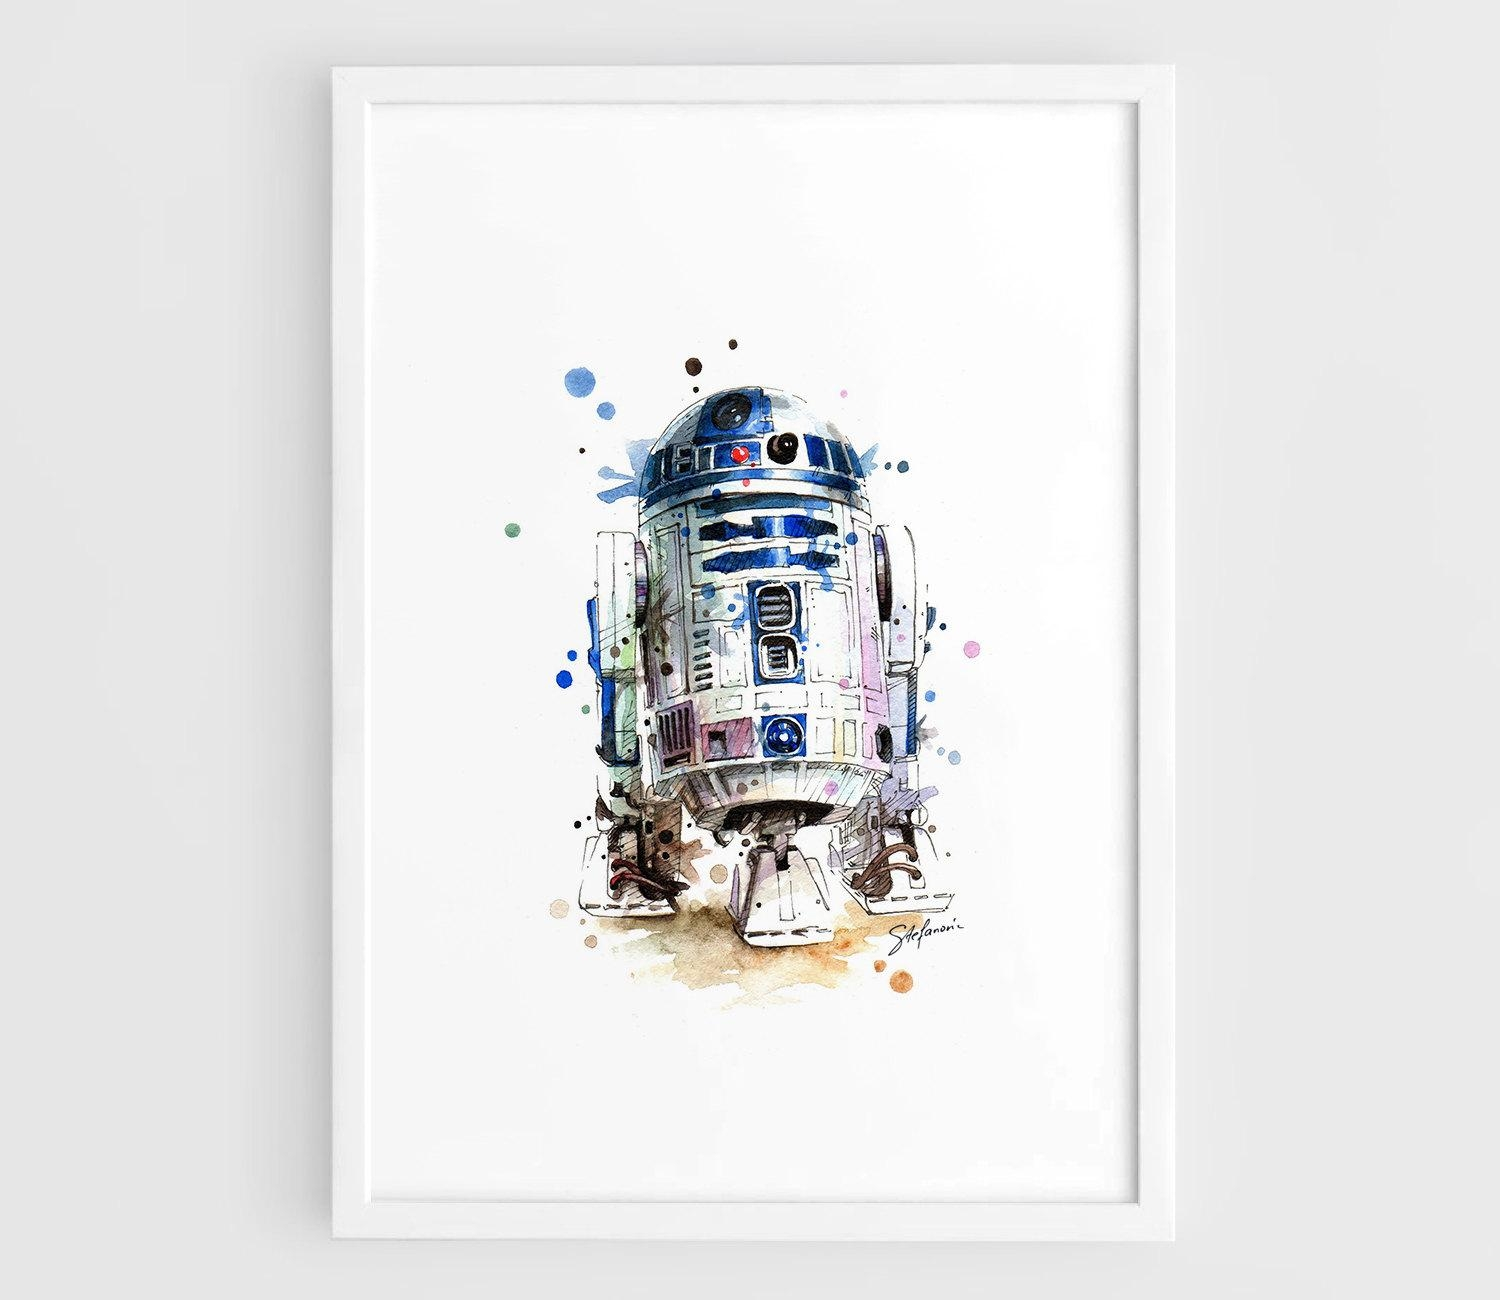 R2D2 Star Wars Movie Poster R2D2 Art Poster Star Wars Art Intended For Diy Star Wars Wall Art (Image 14 of 20)